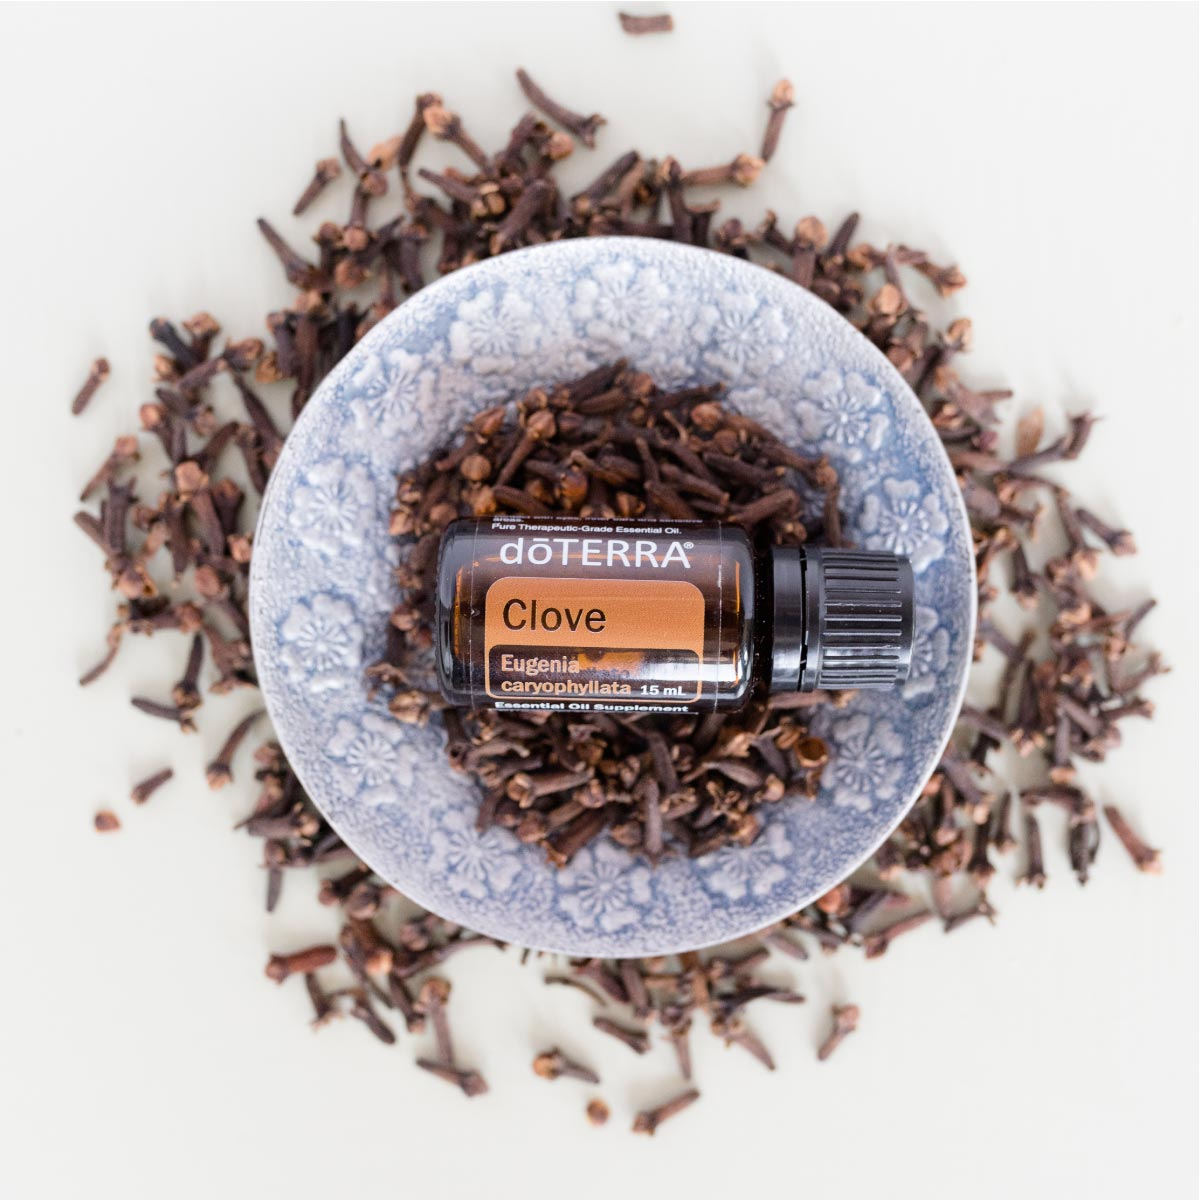 doTERRA Clove oil bottle in bowl with fresh clove. What are the top uses for Clove oil? Clove oil can be used to clean the teeth and gums, and also provides the body with powerful antioxidant benefits.*